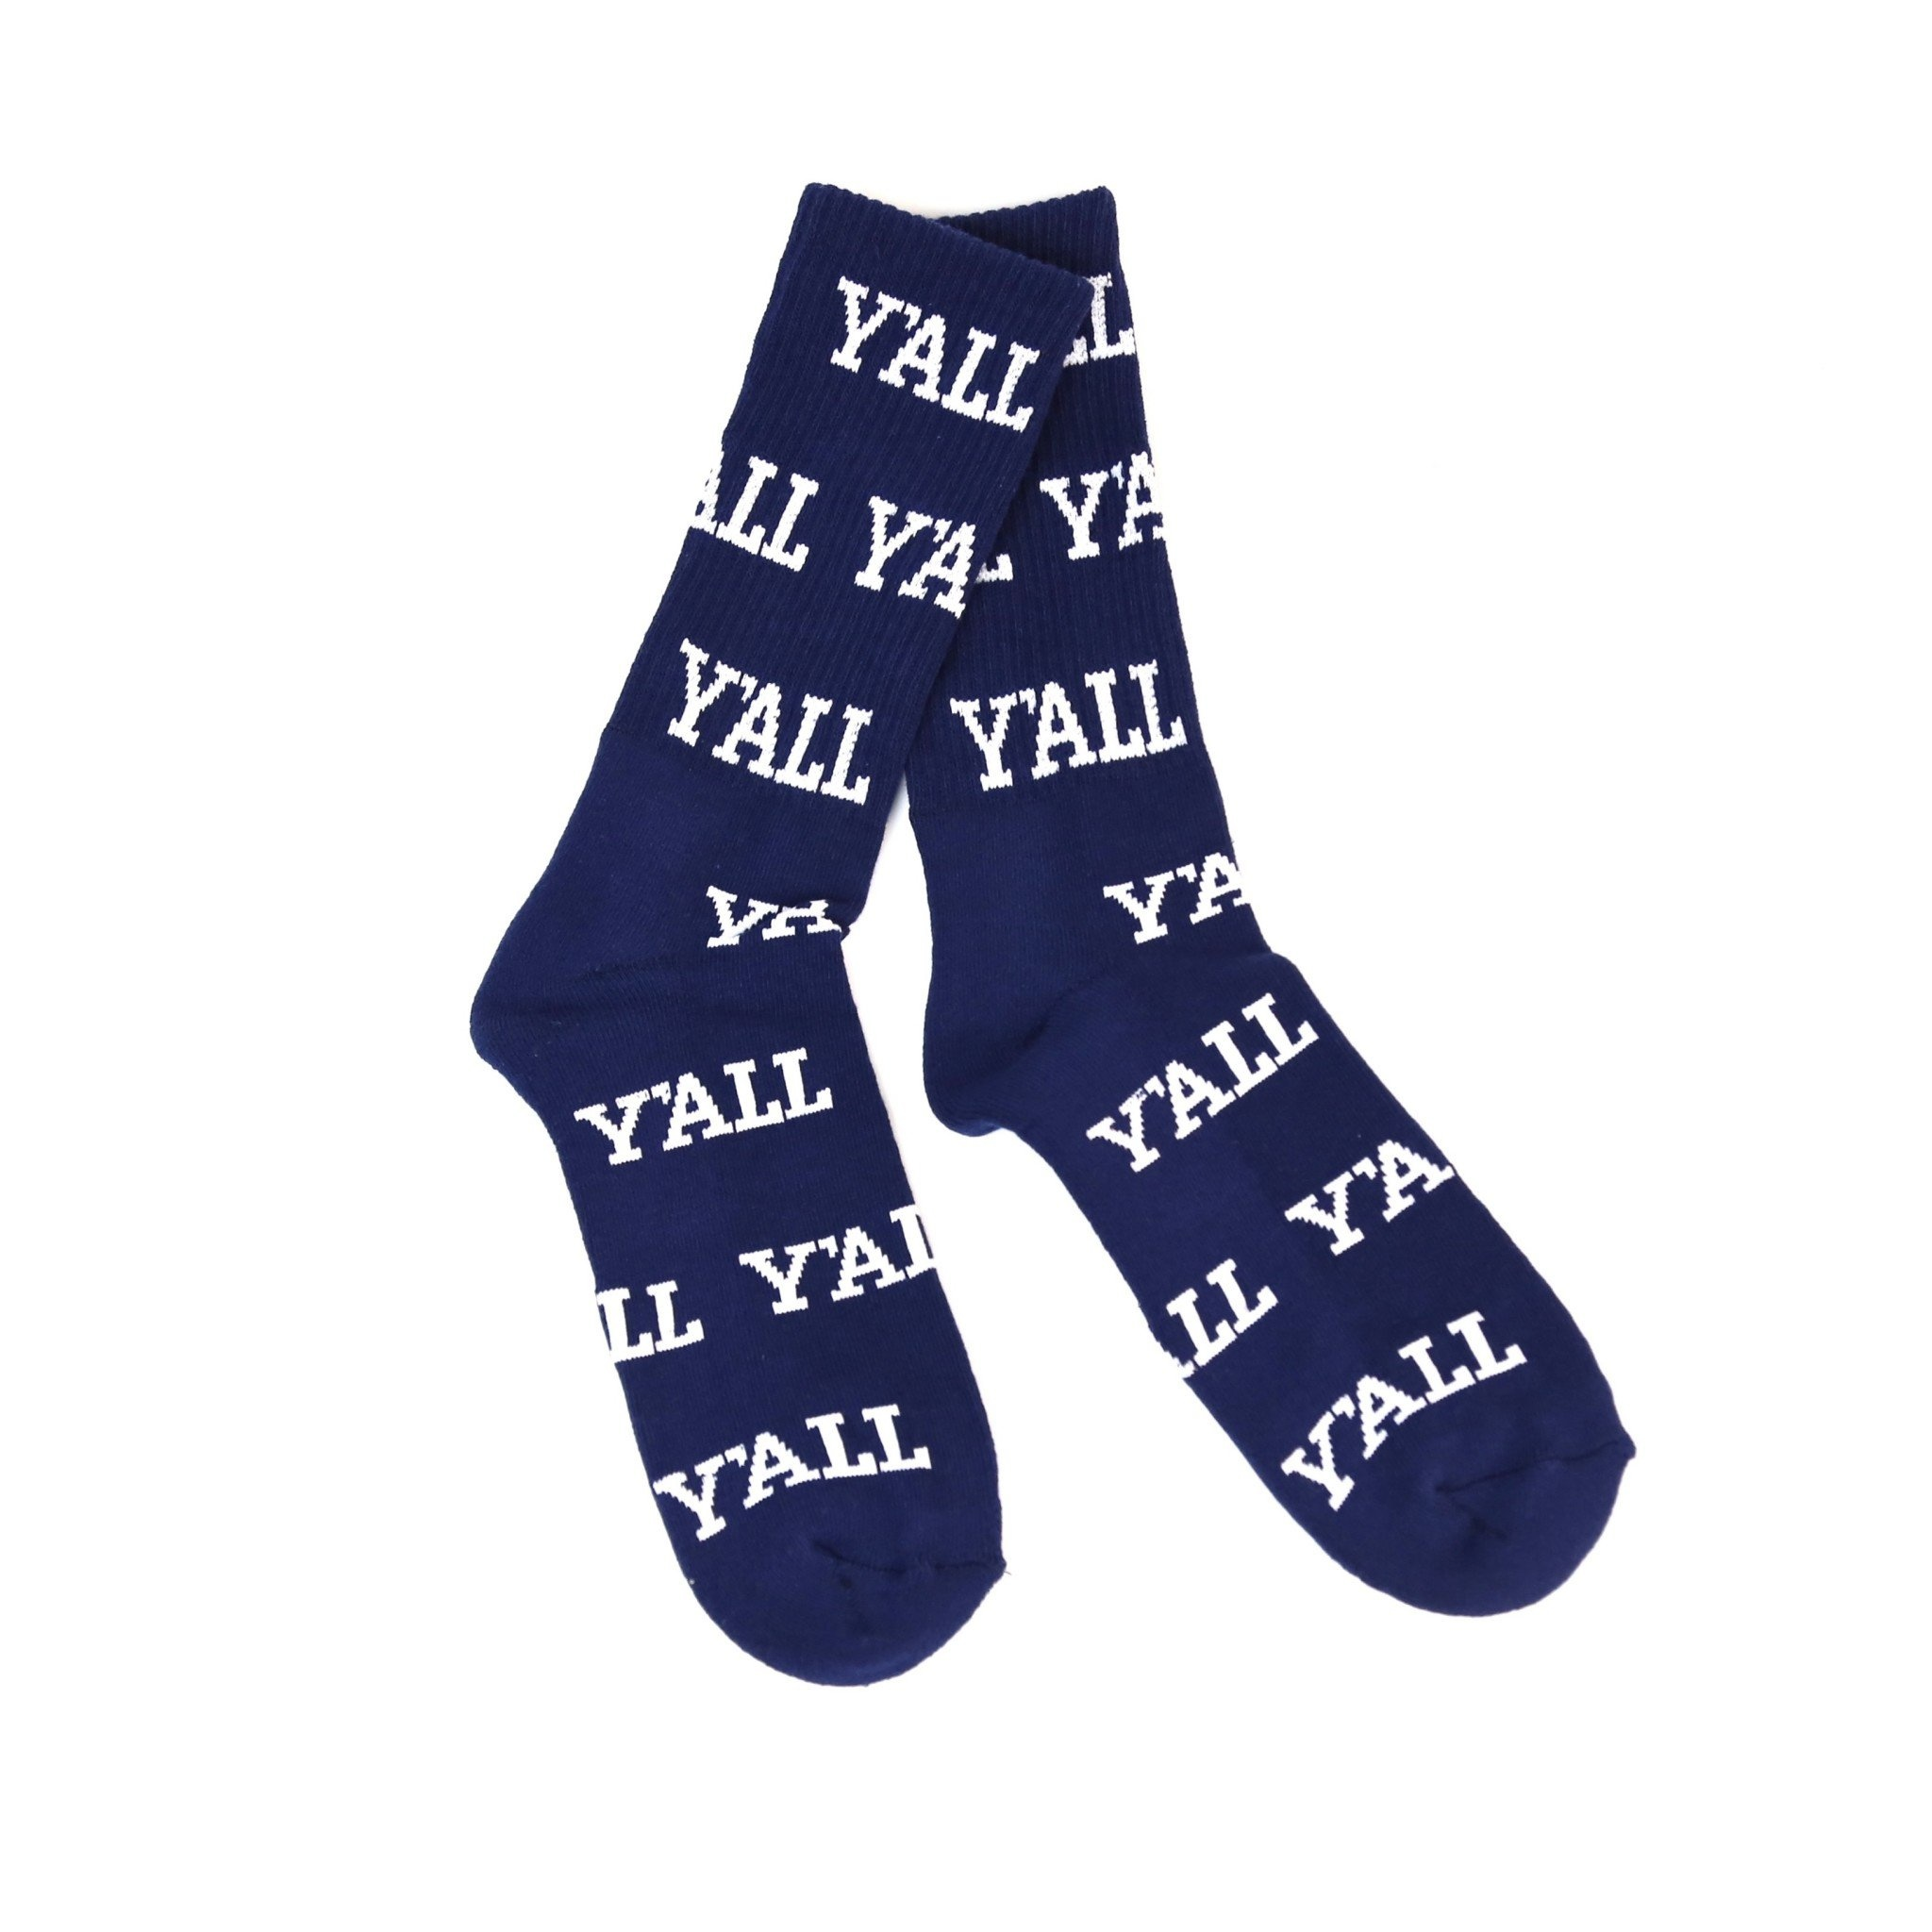 KY for KY Southern Socks Y'all  (navy/white)